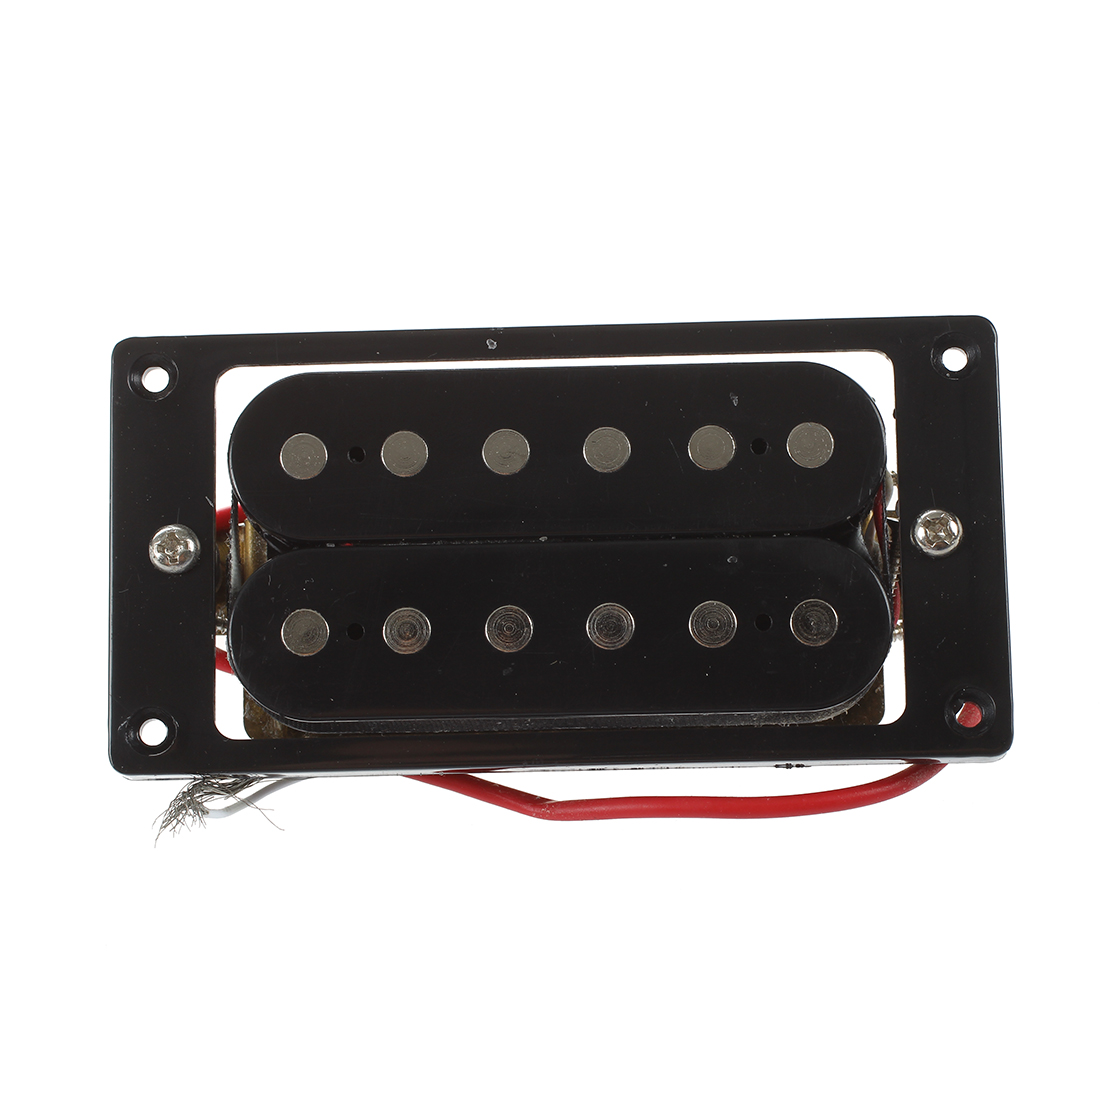 HOT 2PCs(1 set)Black Humbucker Double Coil Electric Guitar Pickups + Frame Screw vitaly mushkin la chasse au sexe attraper la fille nue